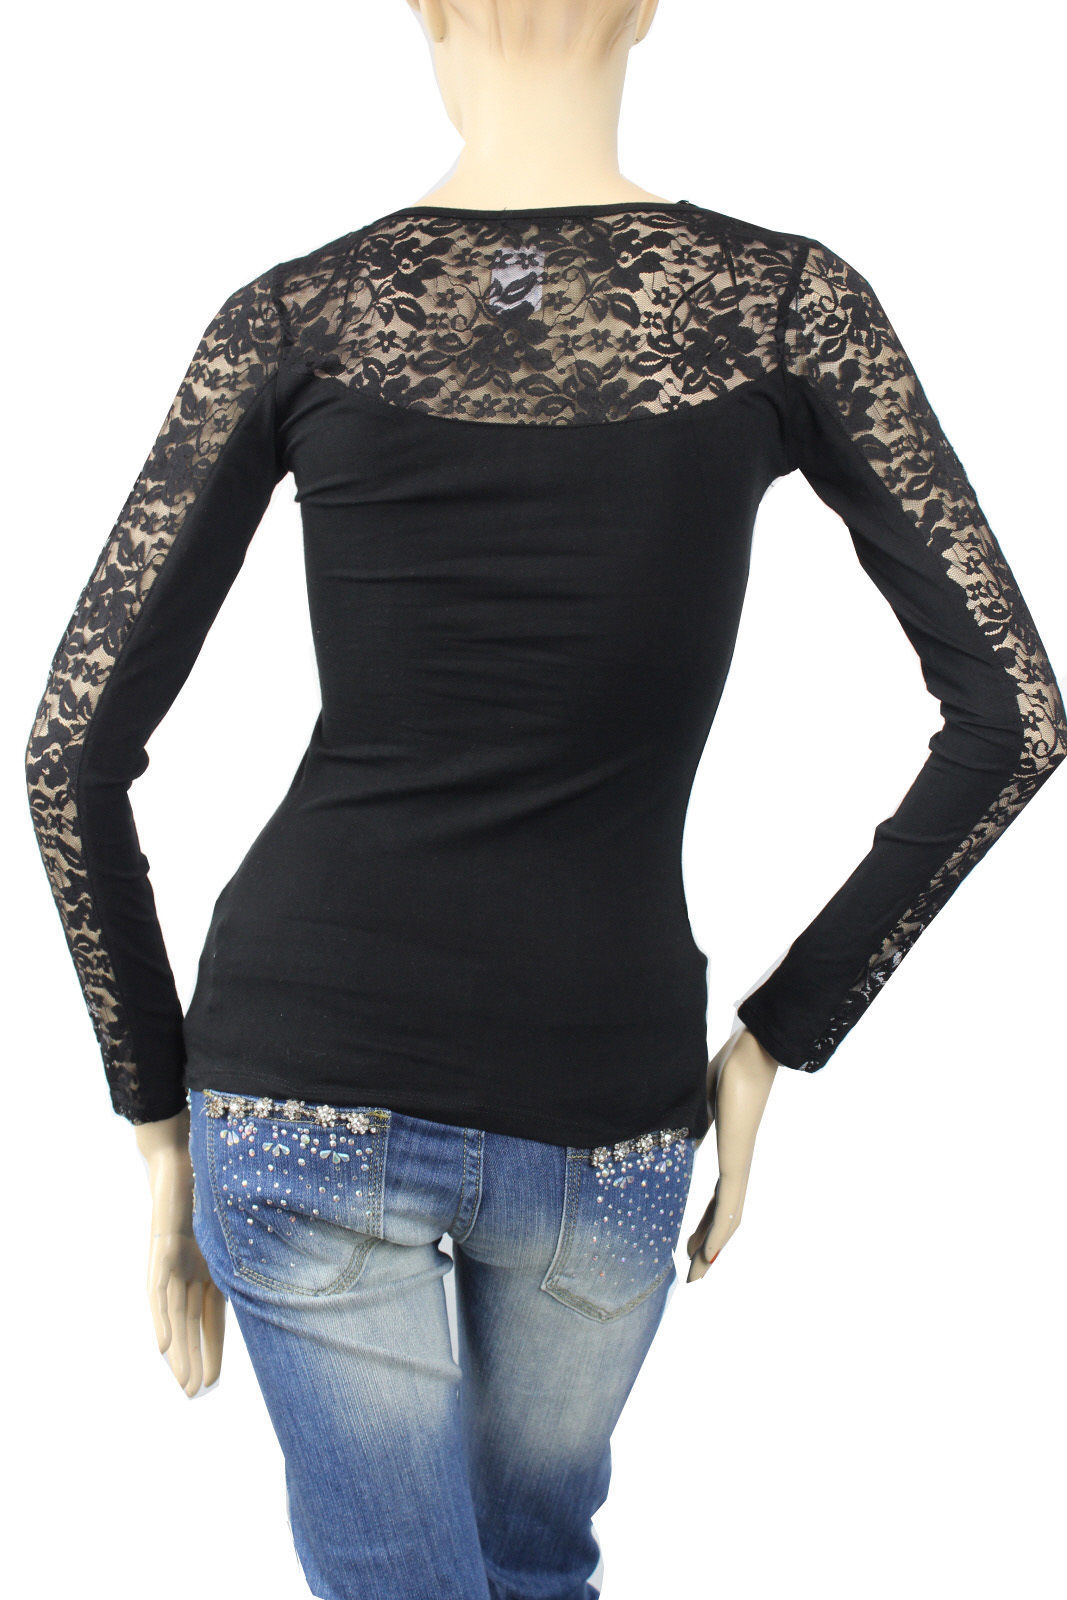 Women's Ruched Lace Arm Blouse R-neck Long Sleeve Slim Layering Casual Top S.M.L